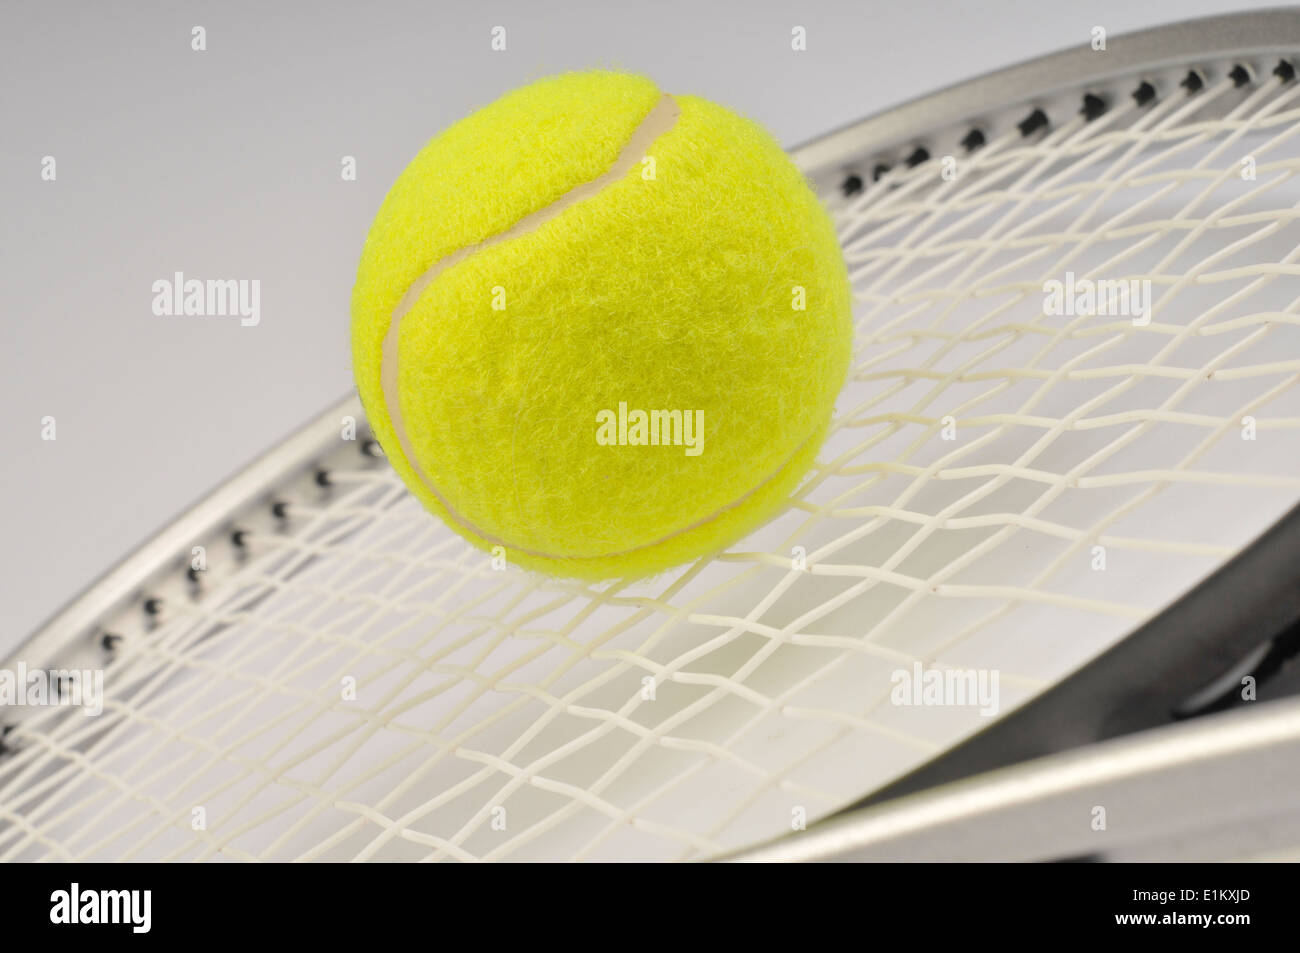 Raquette et balle de tennis Photo Stock